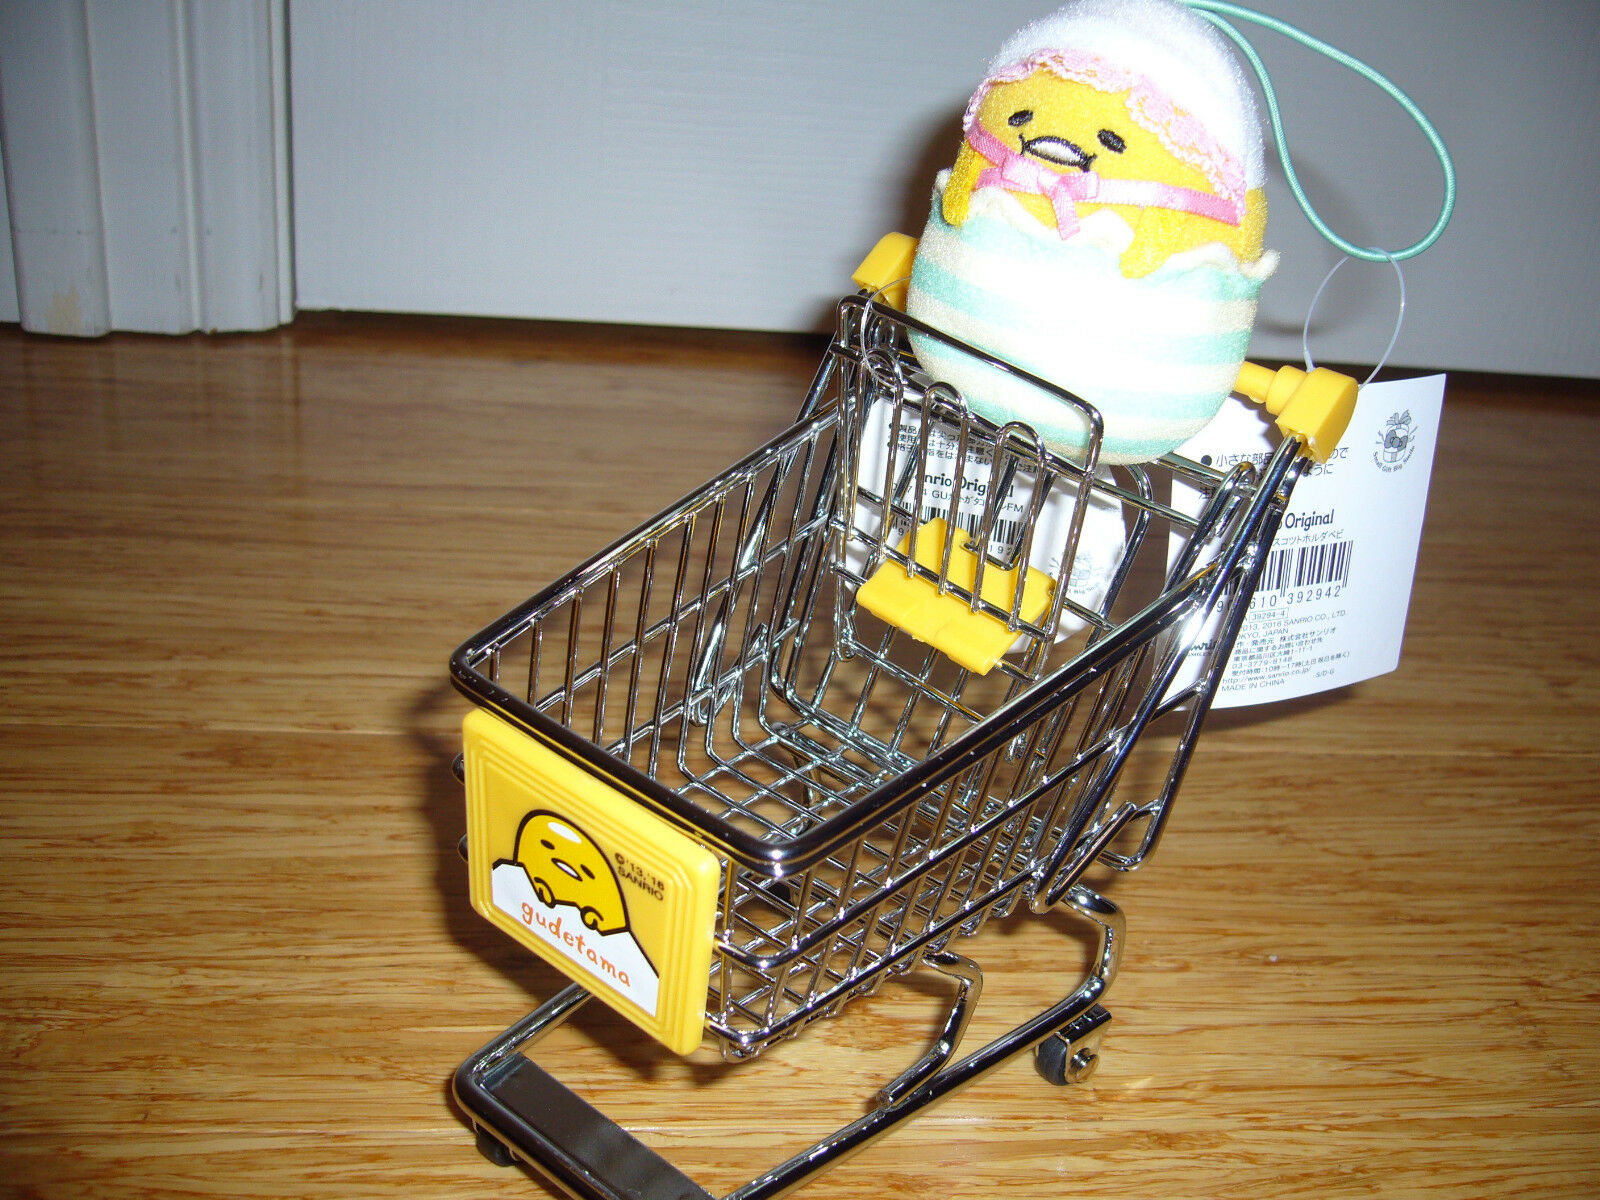 BRAND NEW GUDETAMA SHOPPING TROLLEY WITH DOLL FROM SANRIO JAPAN